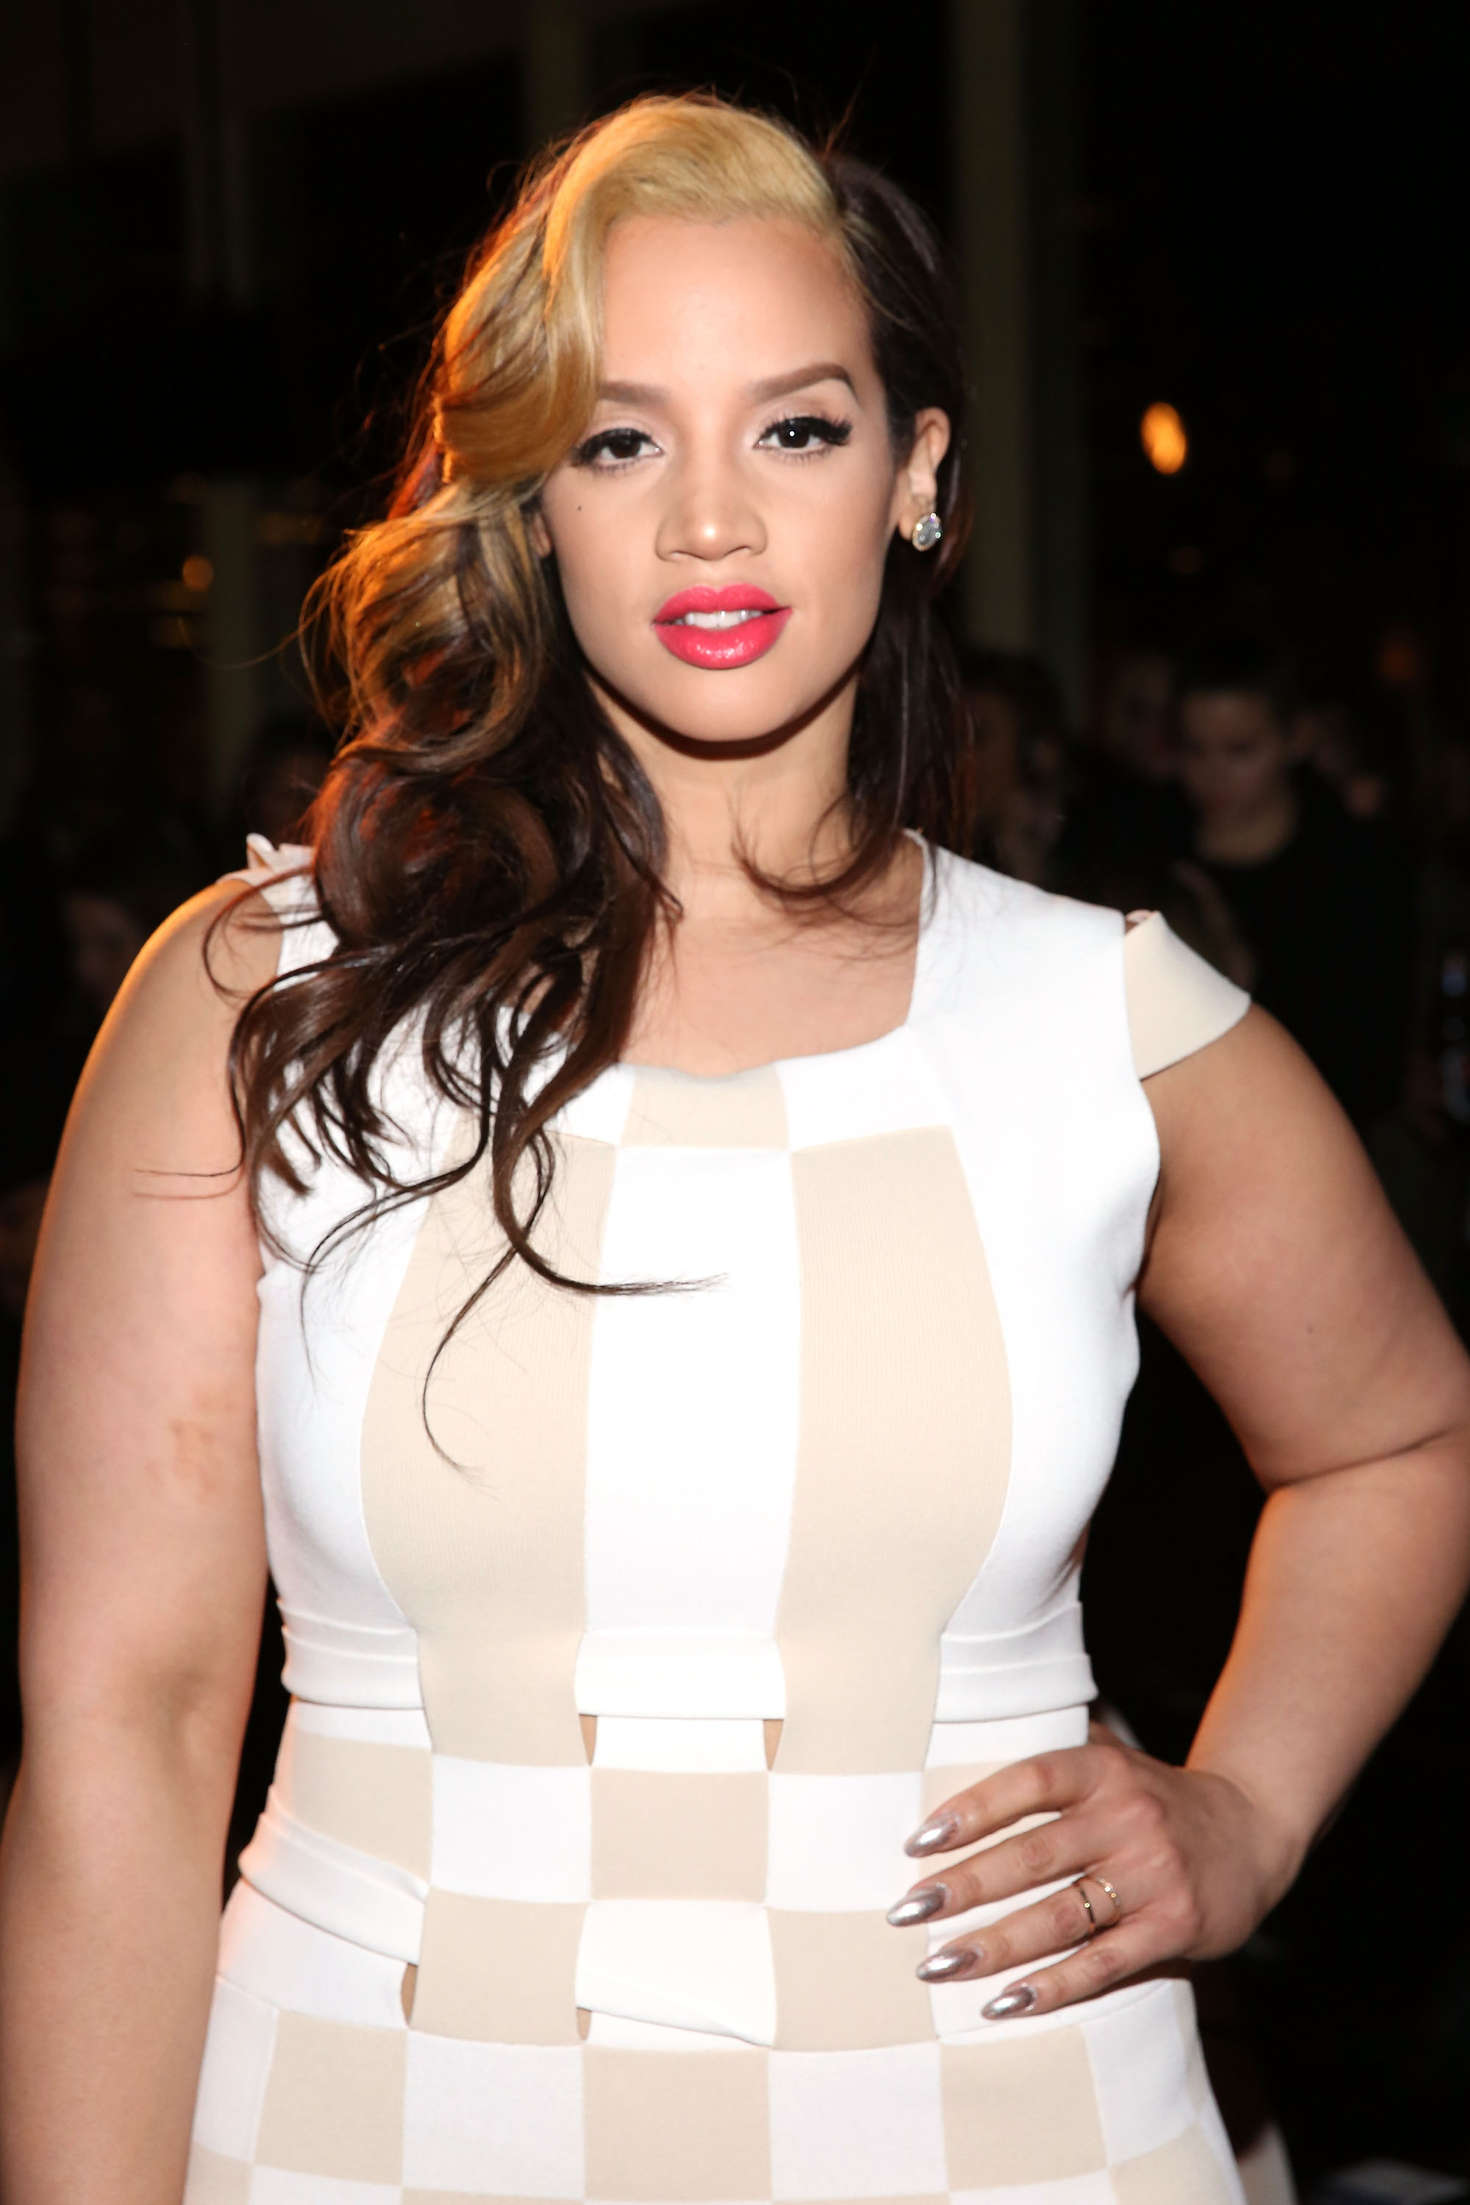 Dascha Polanco Opening Ceremony after party at New York Fashion Week